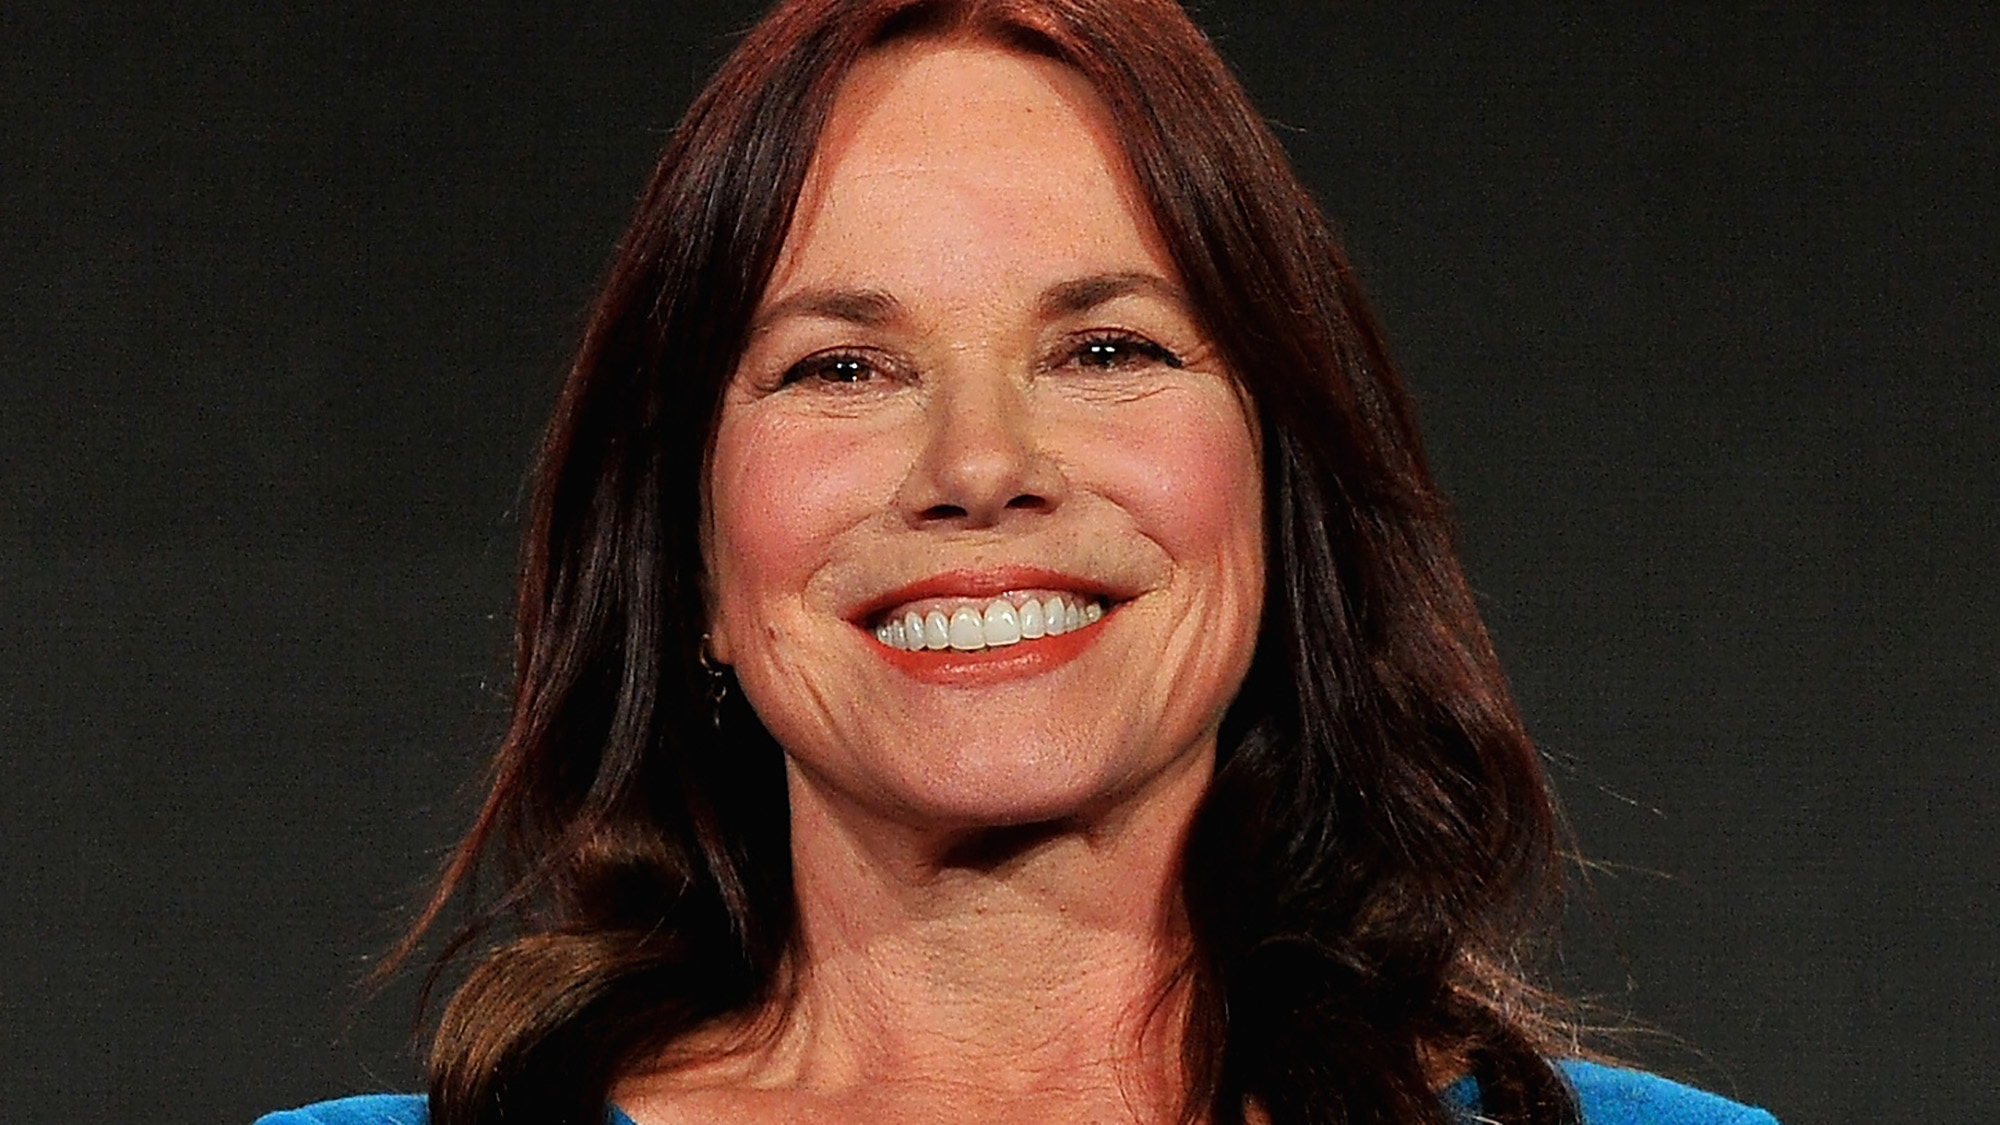 Barbara Hershey naked (79 foto and video), Pussy, Cleavage, Boobs, braless 2006